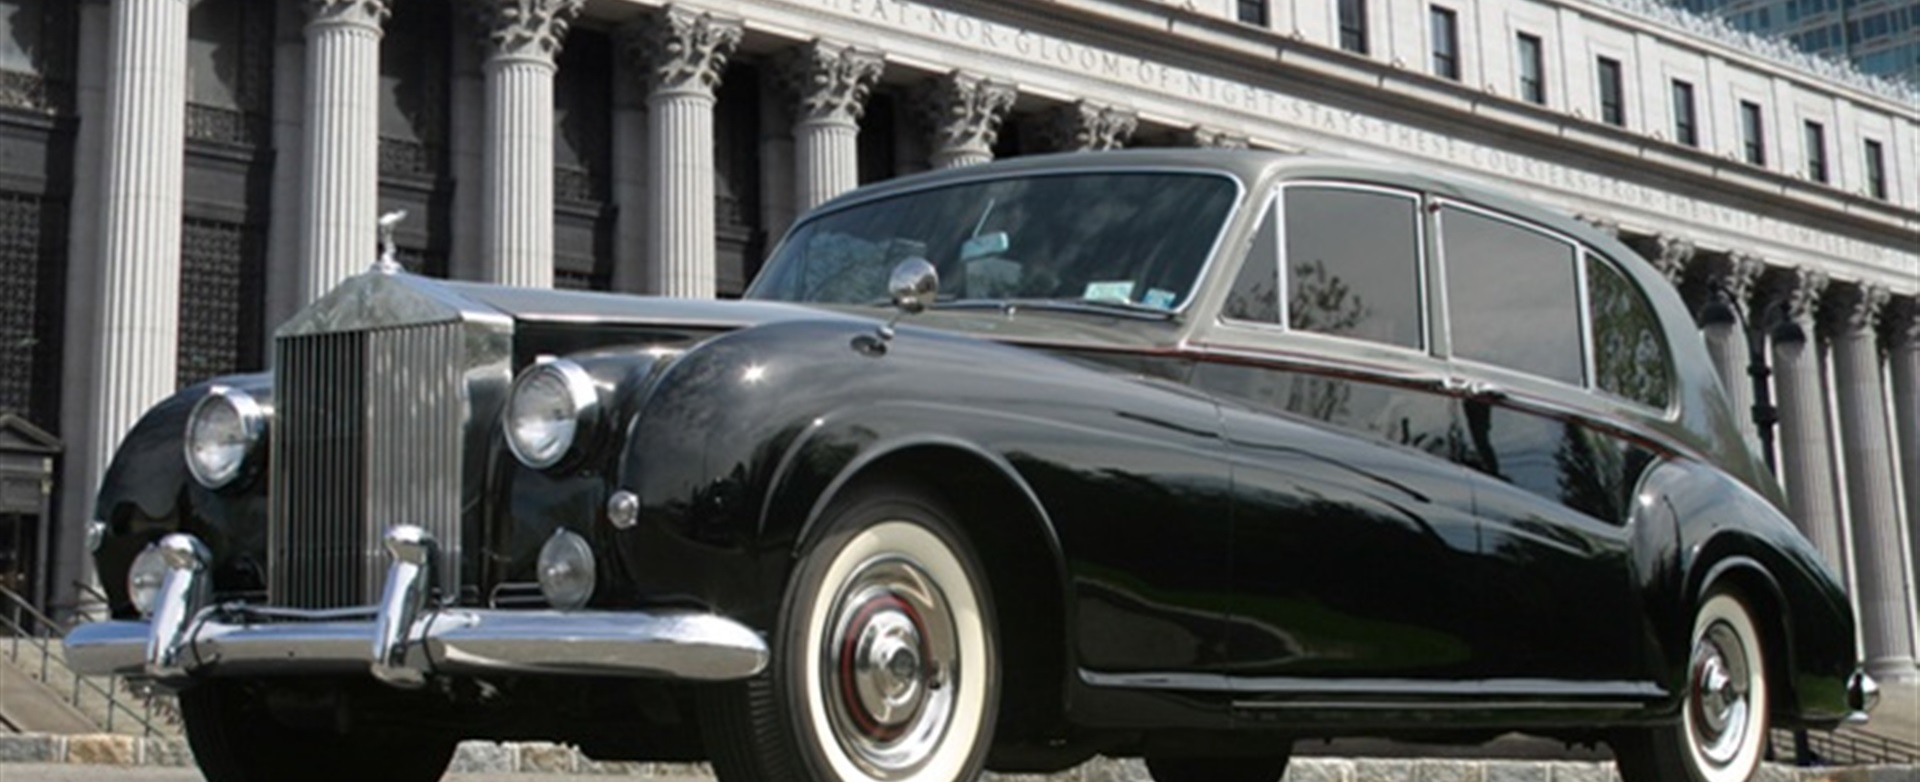 1962 Vintage Rolls Royce | James Young Edition Phantom V by All Star Limousine on Long Island